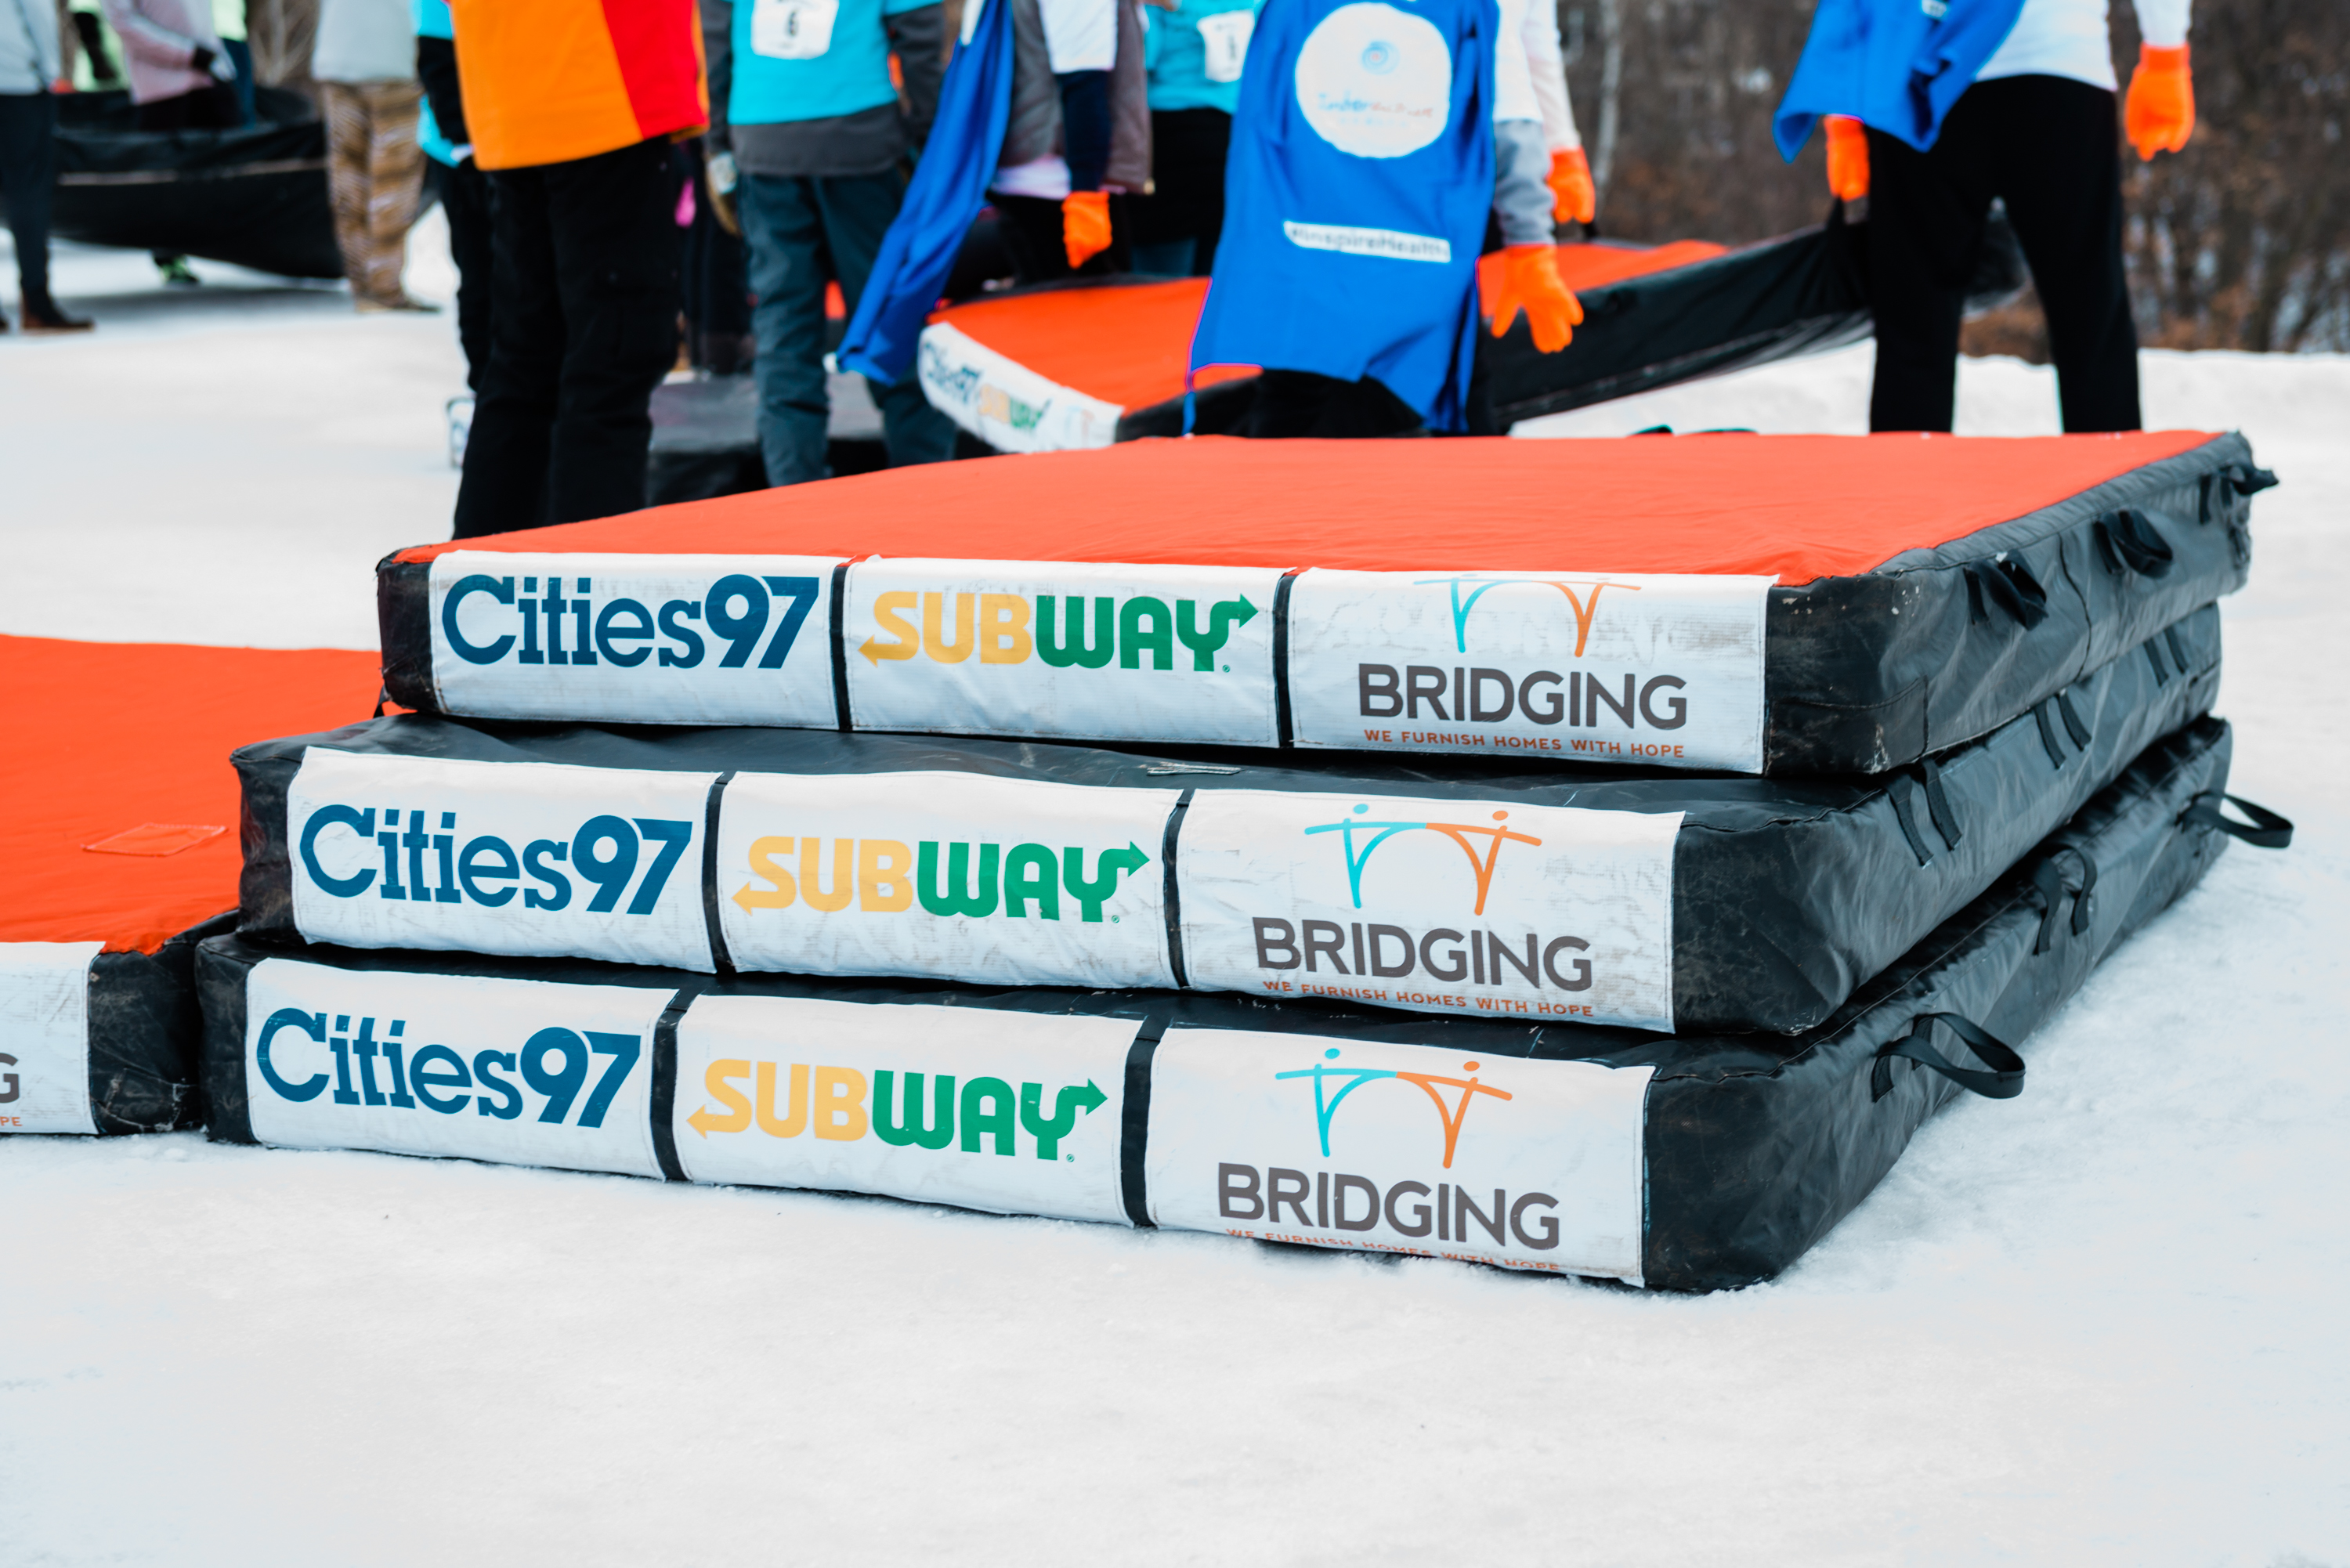 Subway Bedrace for Bridging, presented by Cities 97!